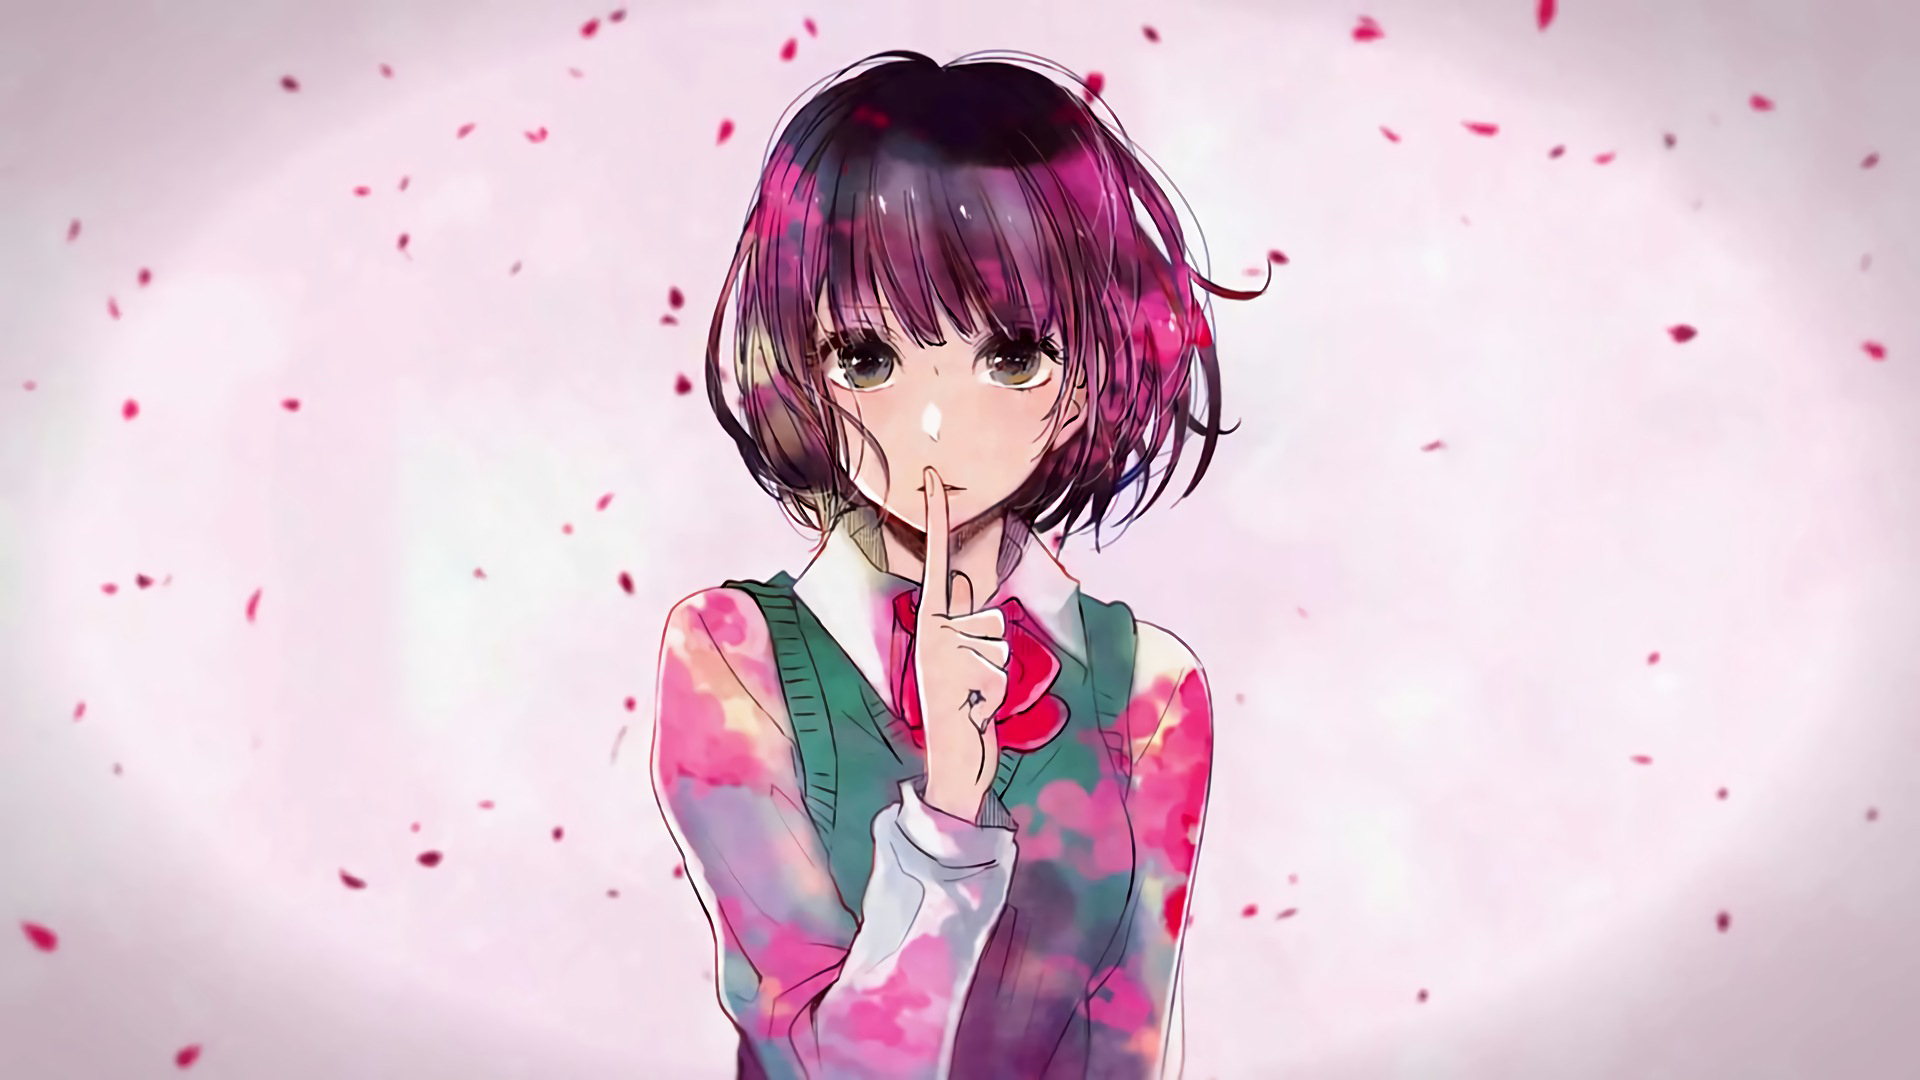 Anime Wallpapers Kuzu no Honkai HD 4K Download For Mobile iPhone & PC